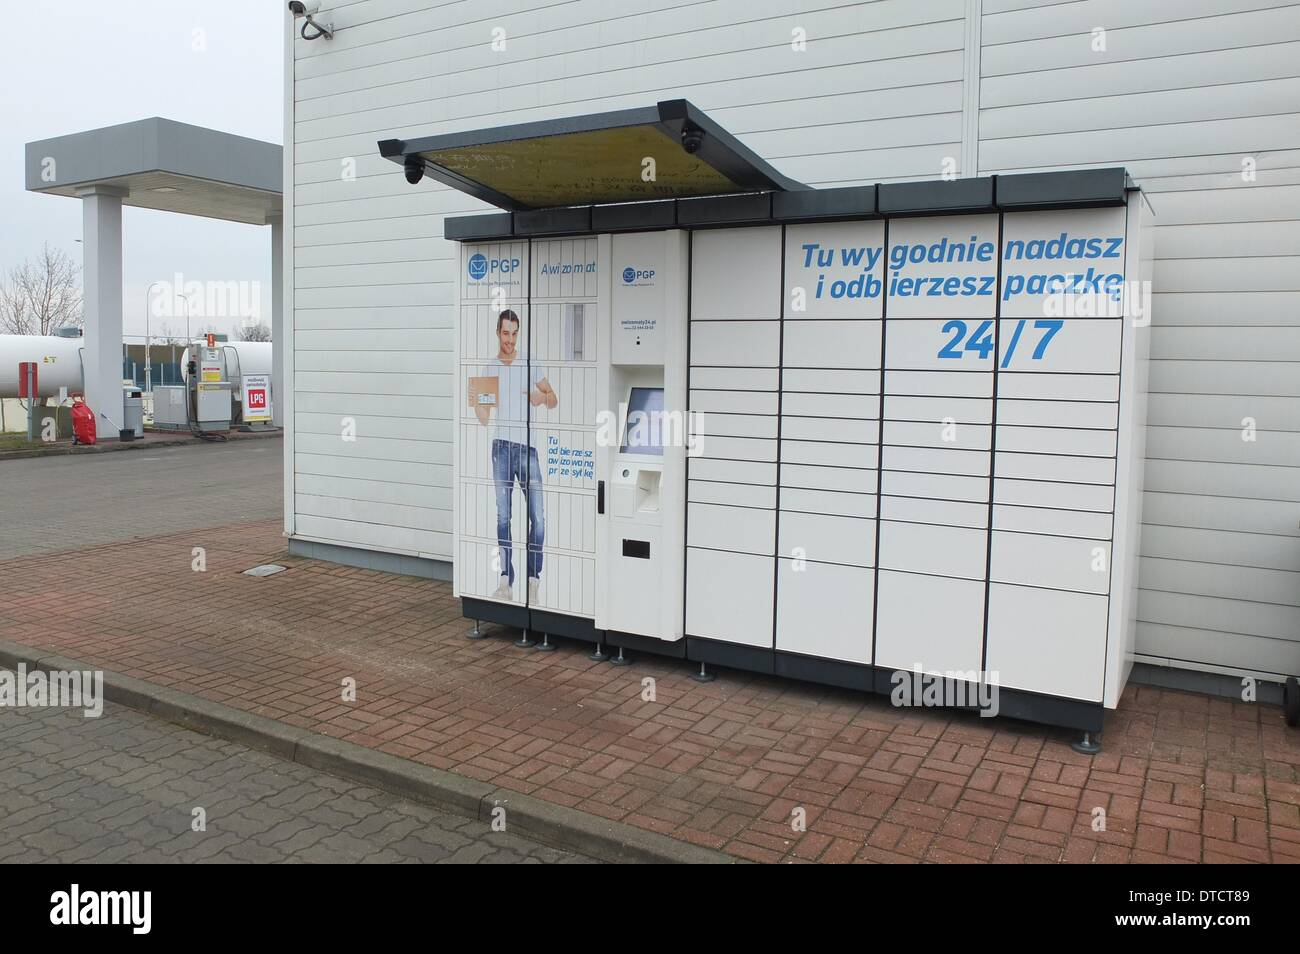 Gdansk, Poland 15th, February 2014 Polish InPost Company finalized an agreement with TFL - London's transport manager - under which the Parcel Lockers machines installation starts in car parks at London Underground stations. Pictured: Parcel Lockers machines belonging to Inpost and PGP S.A. consortium mounted in Gdansk at a petrol station. Credit:  Michal Fludra/Alamy Live News - Stock Image